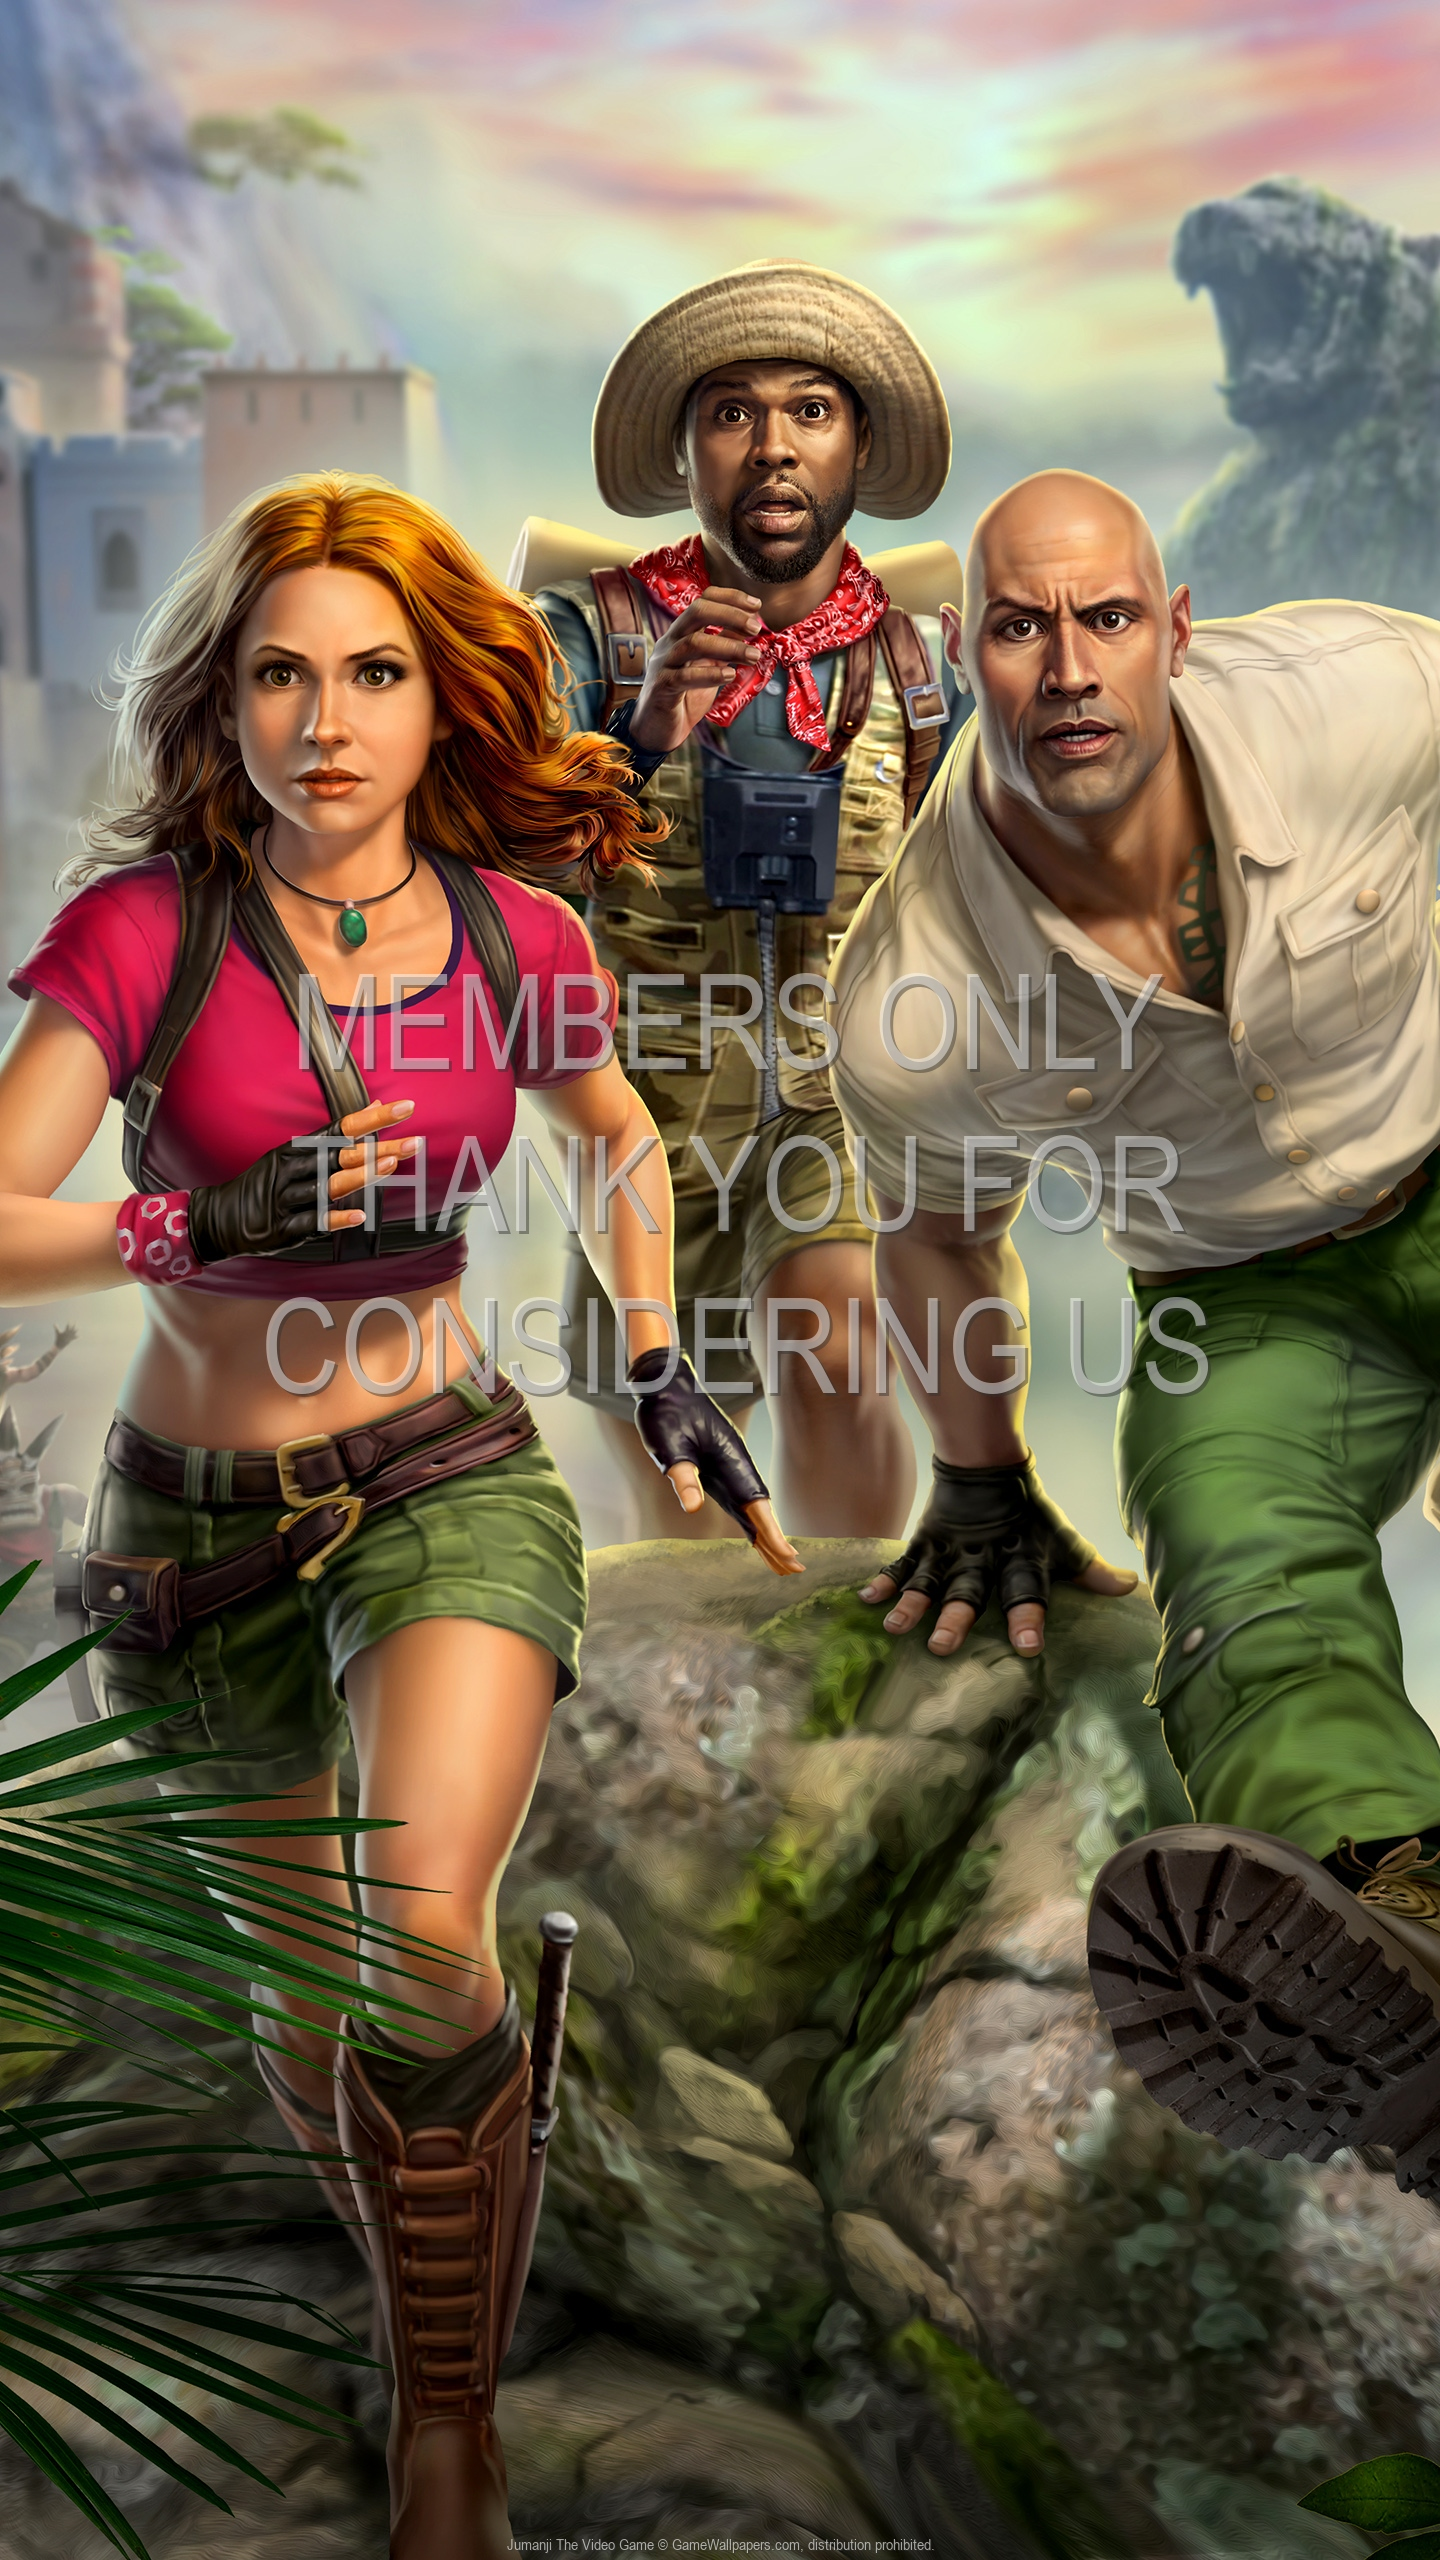 Jumanji: The Video Game 1920x1080 Mobile wallpaper or background 01